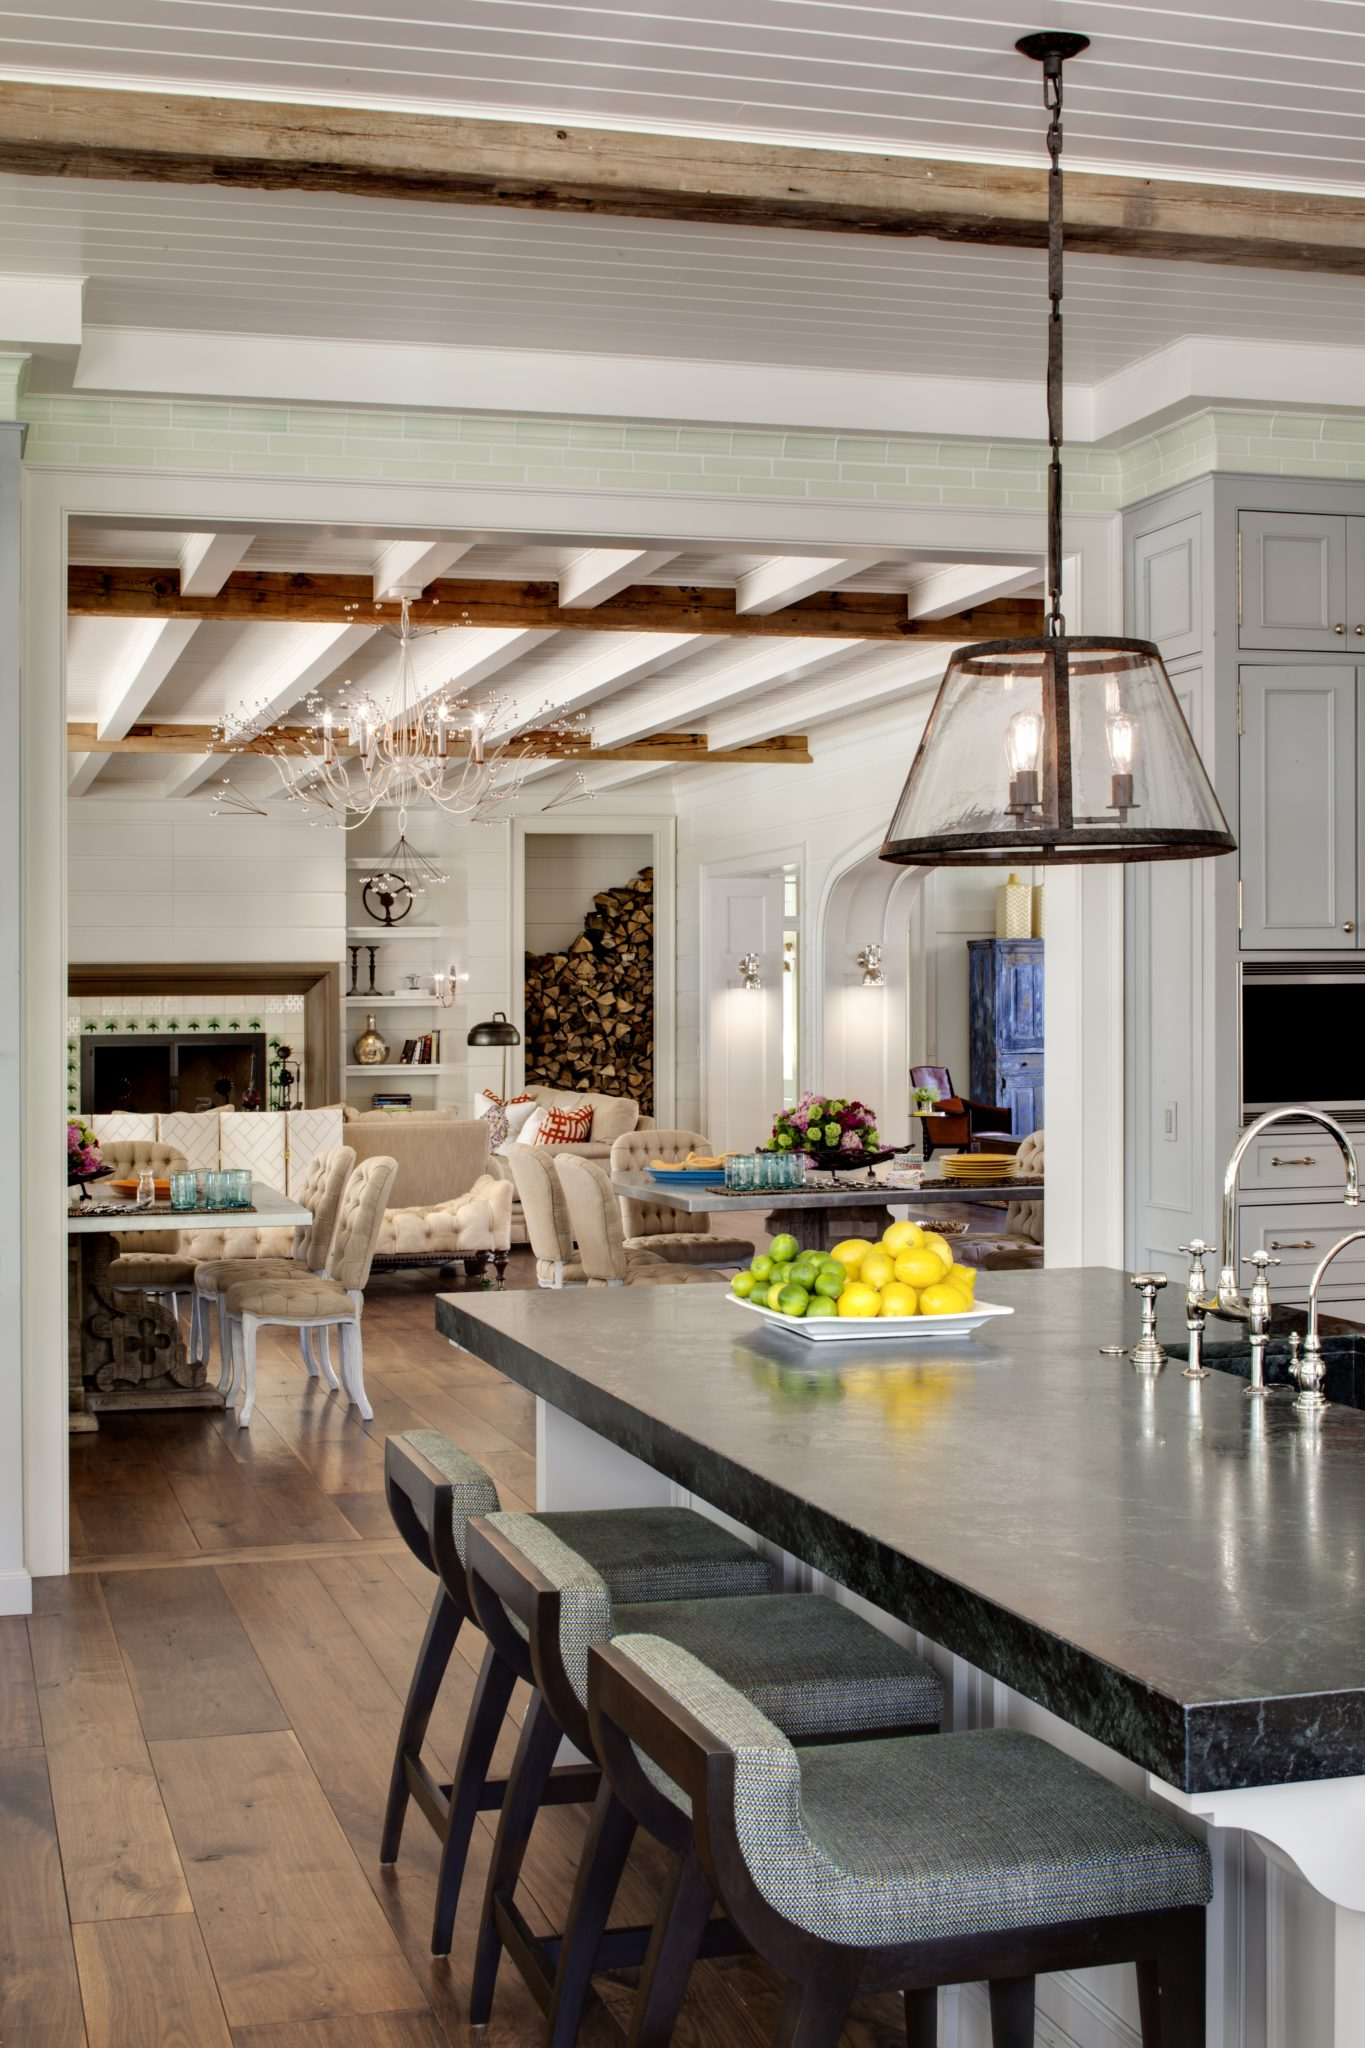 A classic stone island for traditional dining with family and friends by Wade Weissmann Architecture Inc.